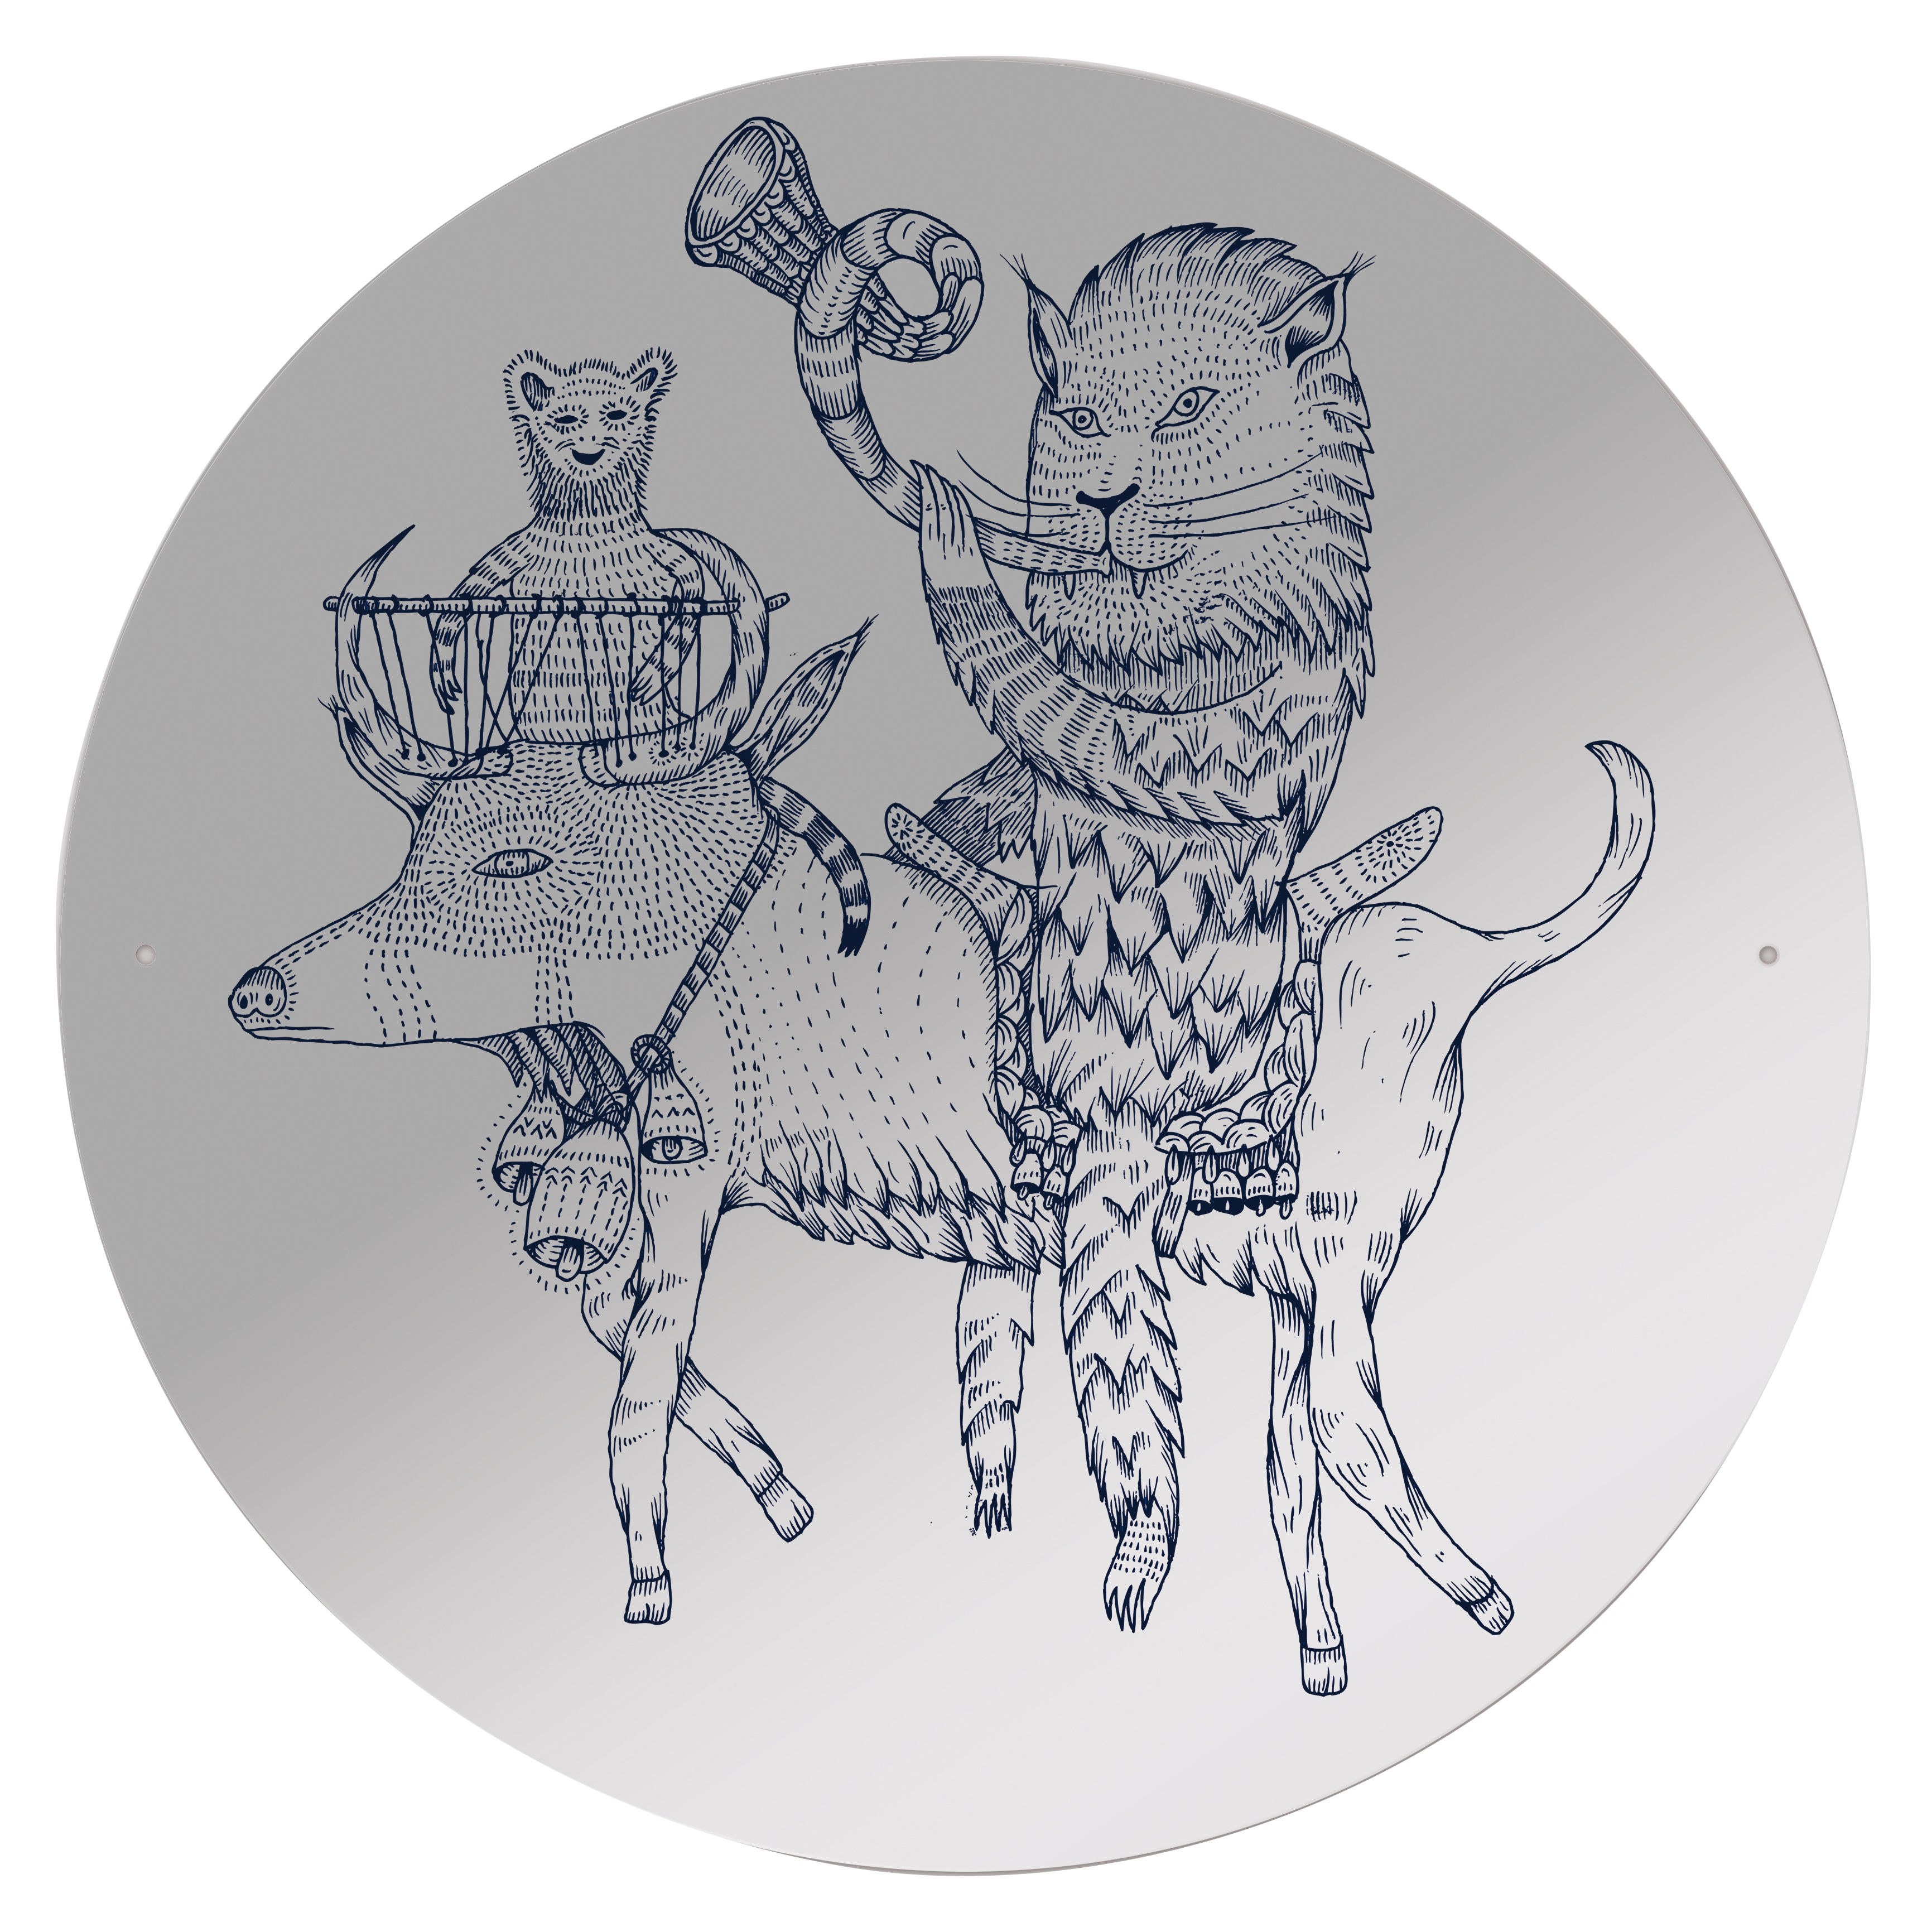 Furniture - Mirrors - Hornlyon self-sticking mirror - Self-adhesive by Domestic - Hornlyon pattern - Plastic material